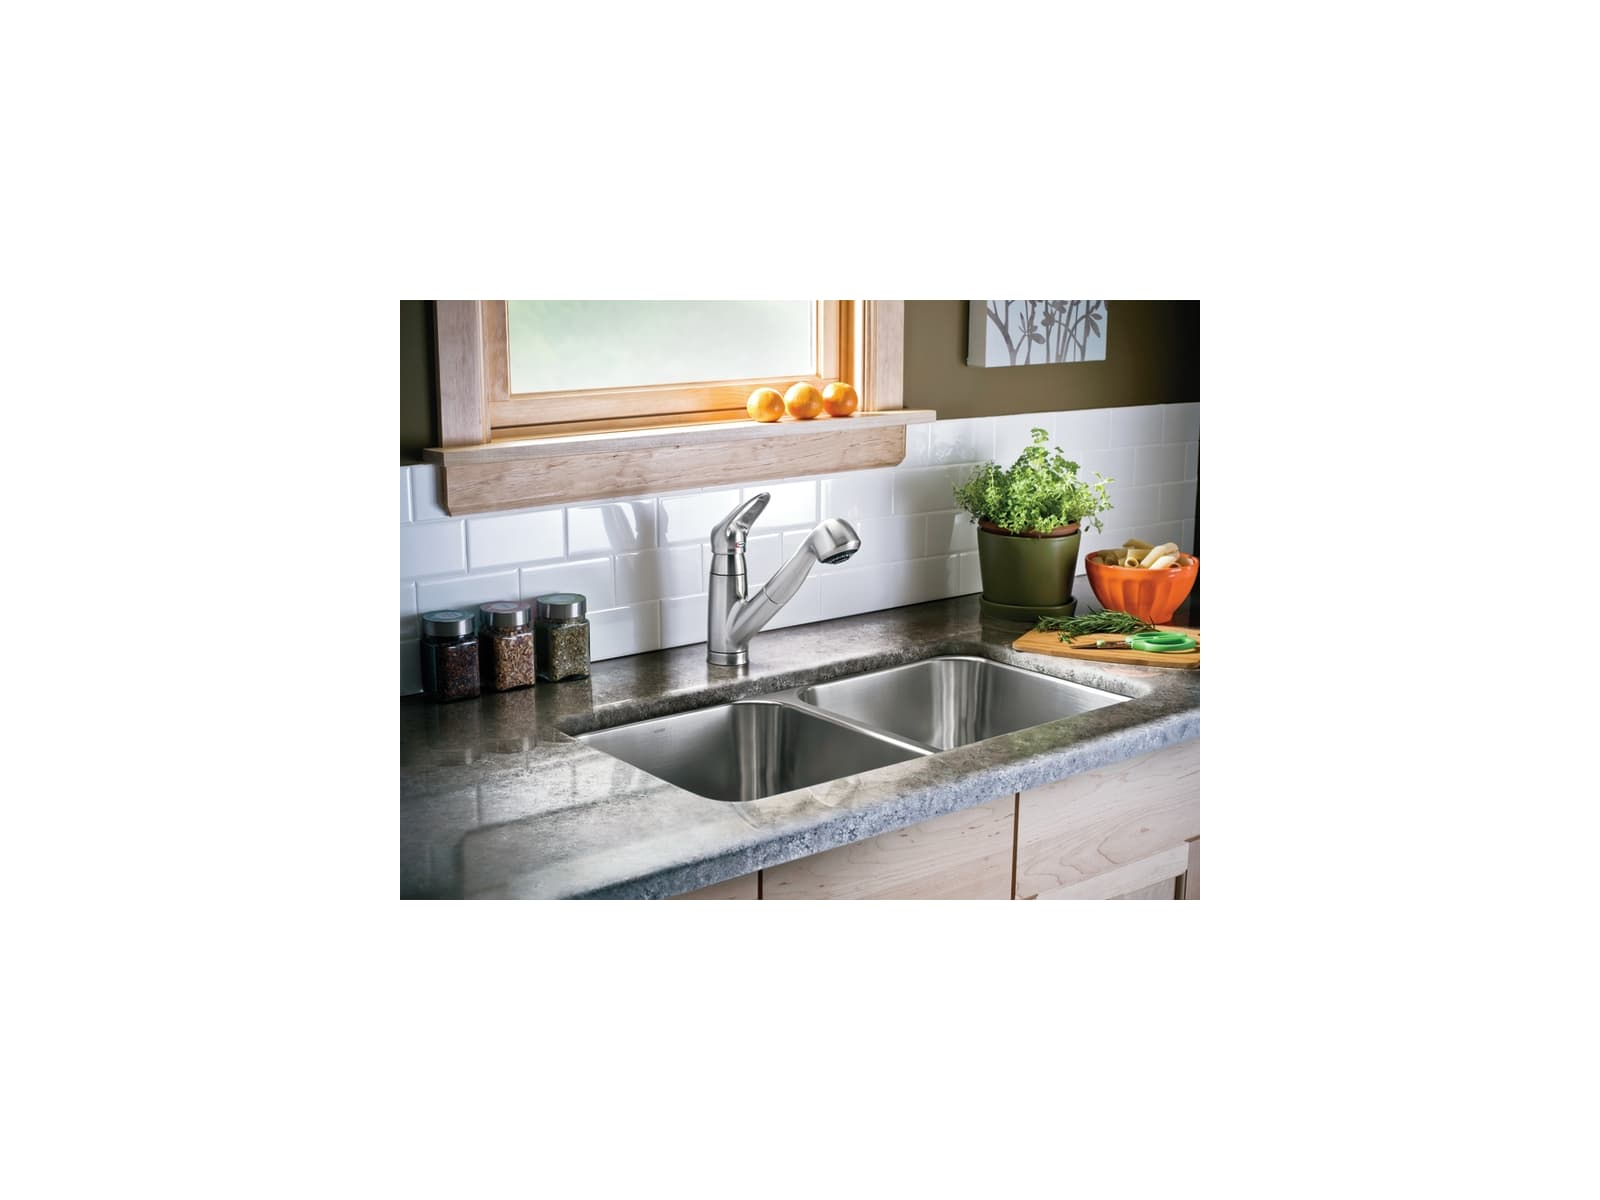 Moen Kitchen Faucet 7570 Repair Wow Blog Ca87004 Parts List And Diagram Ereplacementpartscom 7570c Chrome Single Handle With Pullout Spray From The Salora Collection Com